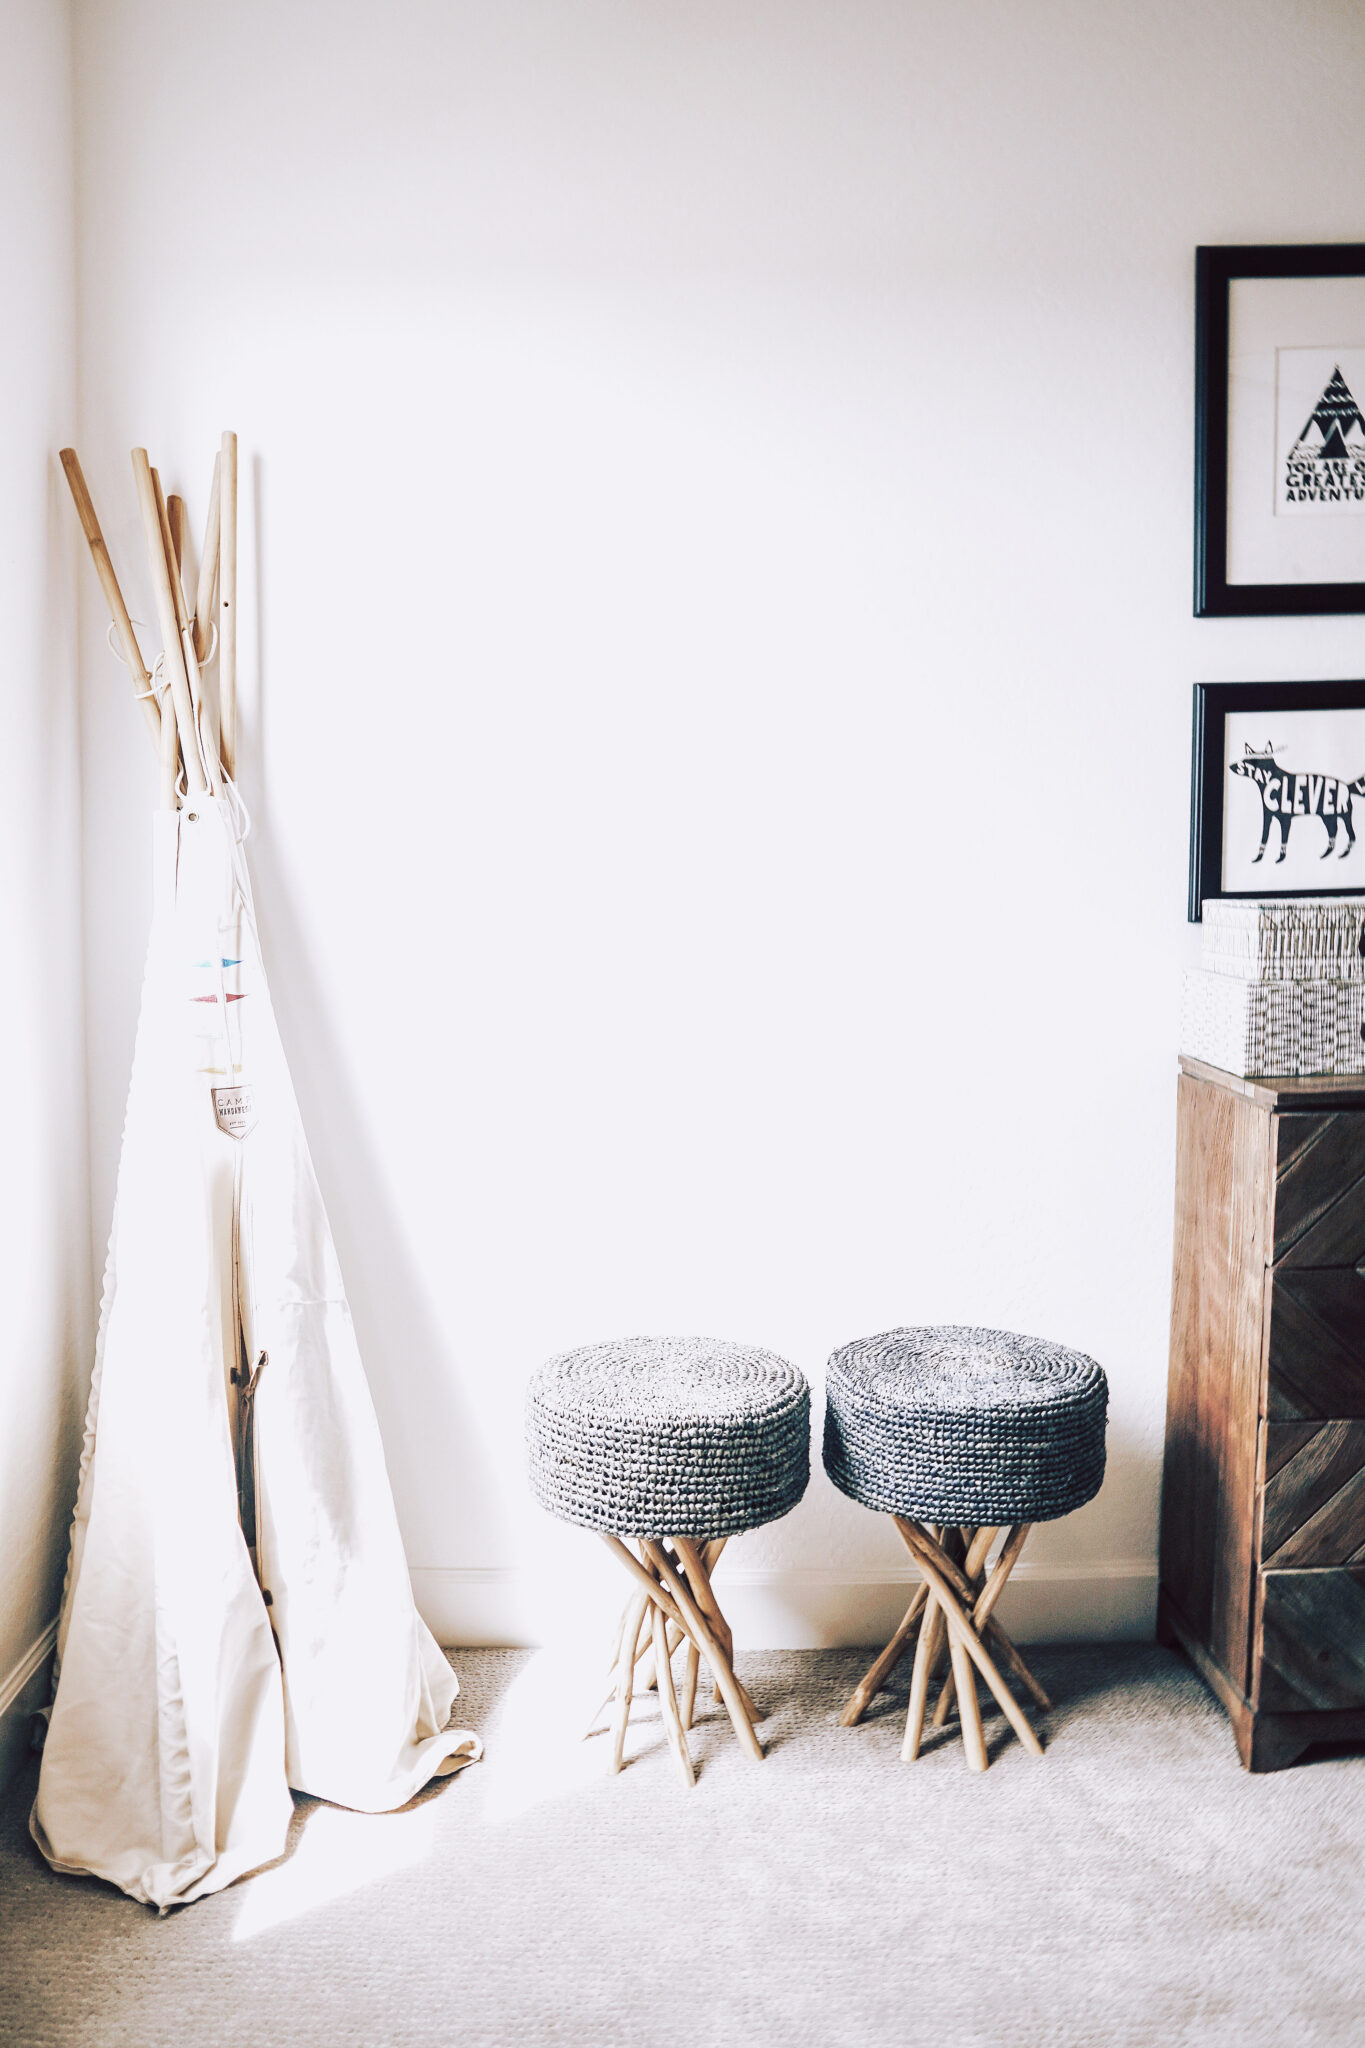 A beautiful boho bedroom. With two stools and storage. This article shows you easy steps to improve you home's value.